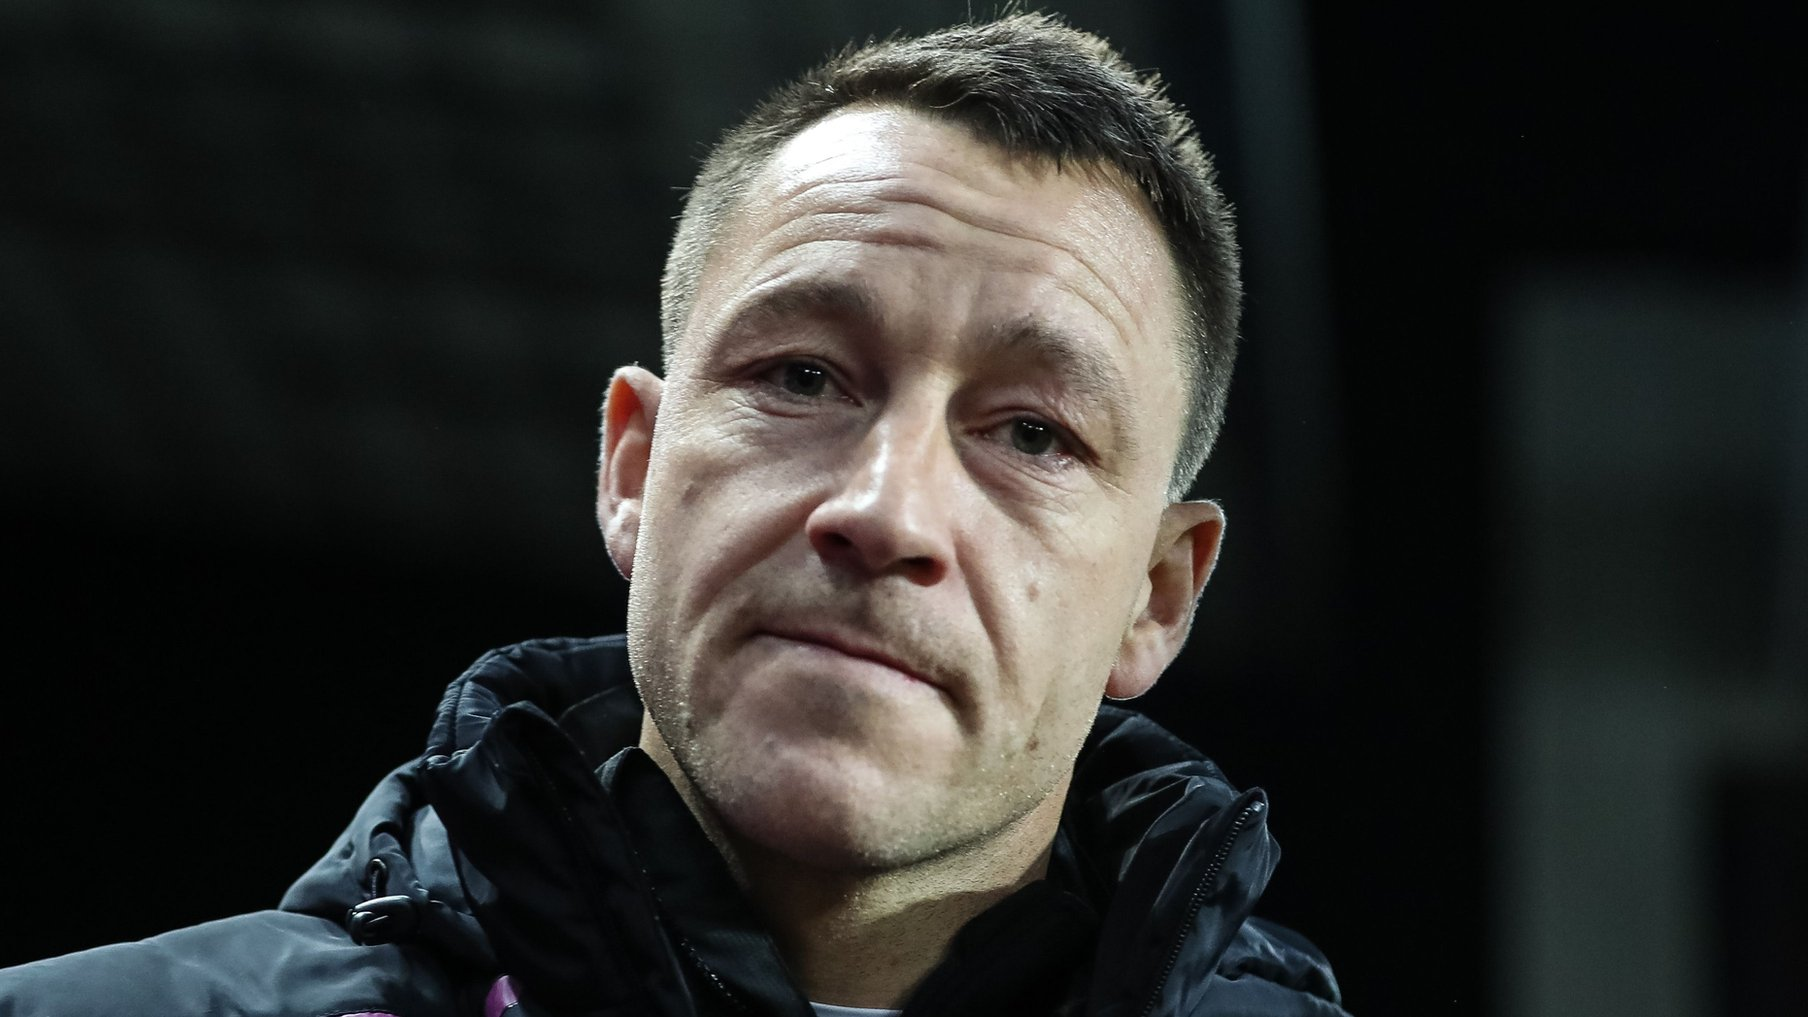 Wales v England: John Terry gives pep talk to Eddie Jones' team